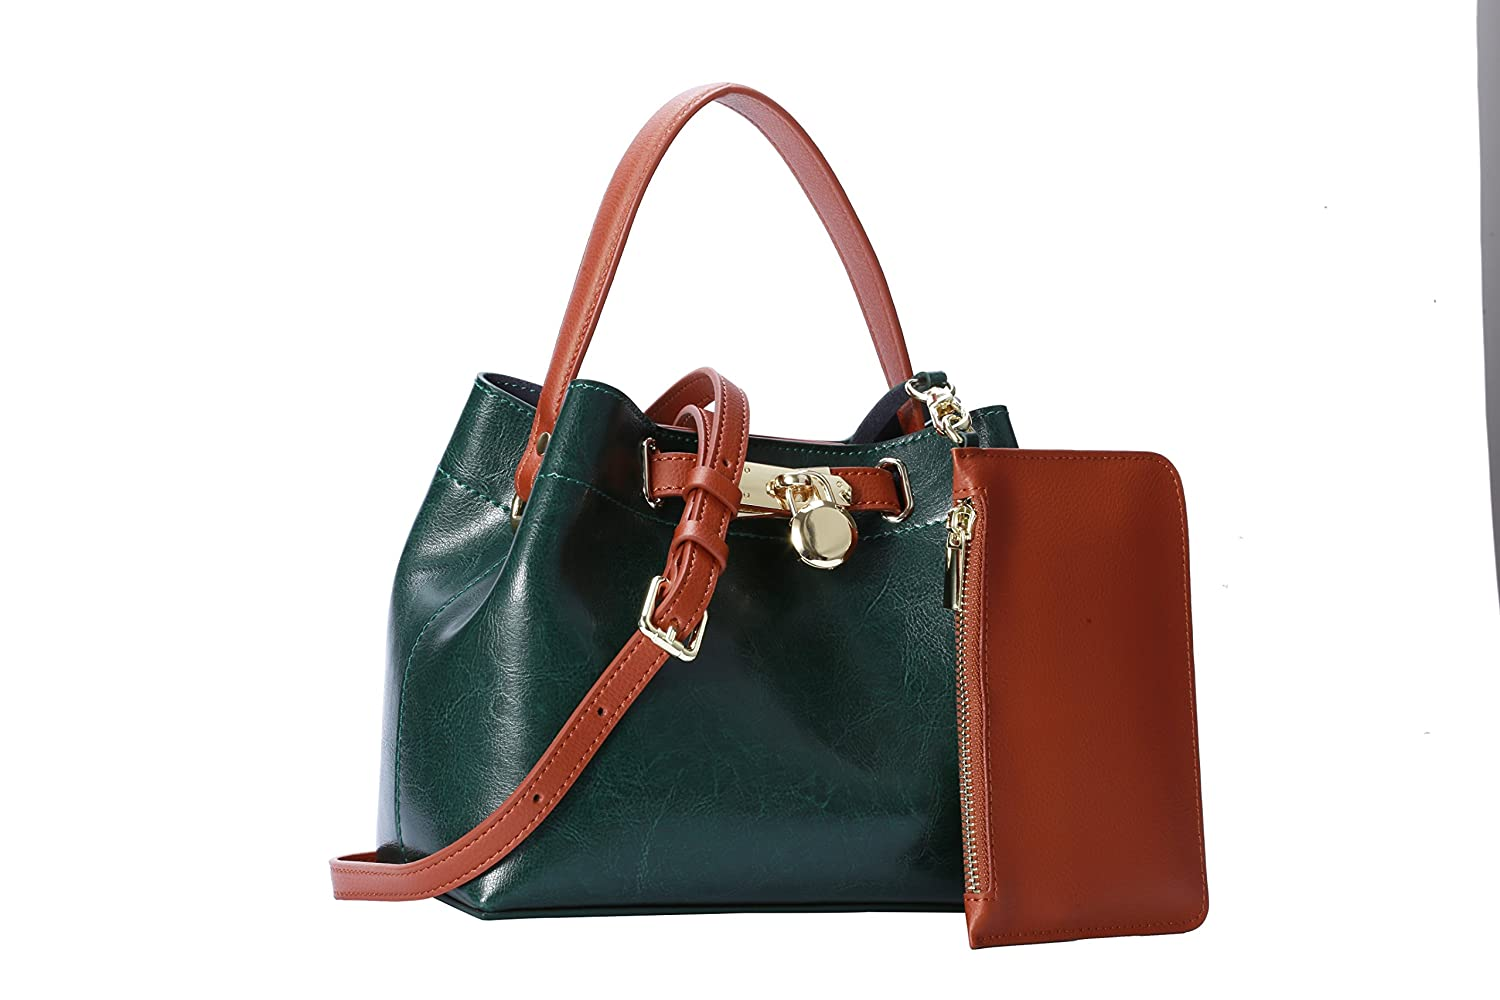 9eb39b68ea1c Strap Purse Women Shoulder Bag Crossbody Satchel Ladies Girls Tote Travel  Party Purse Genuine Leather Dual Use (Green)  Handbags  Amazon.com